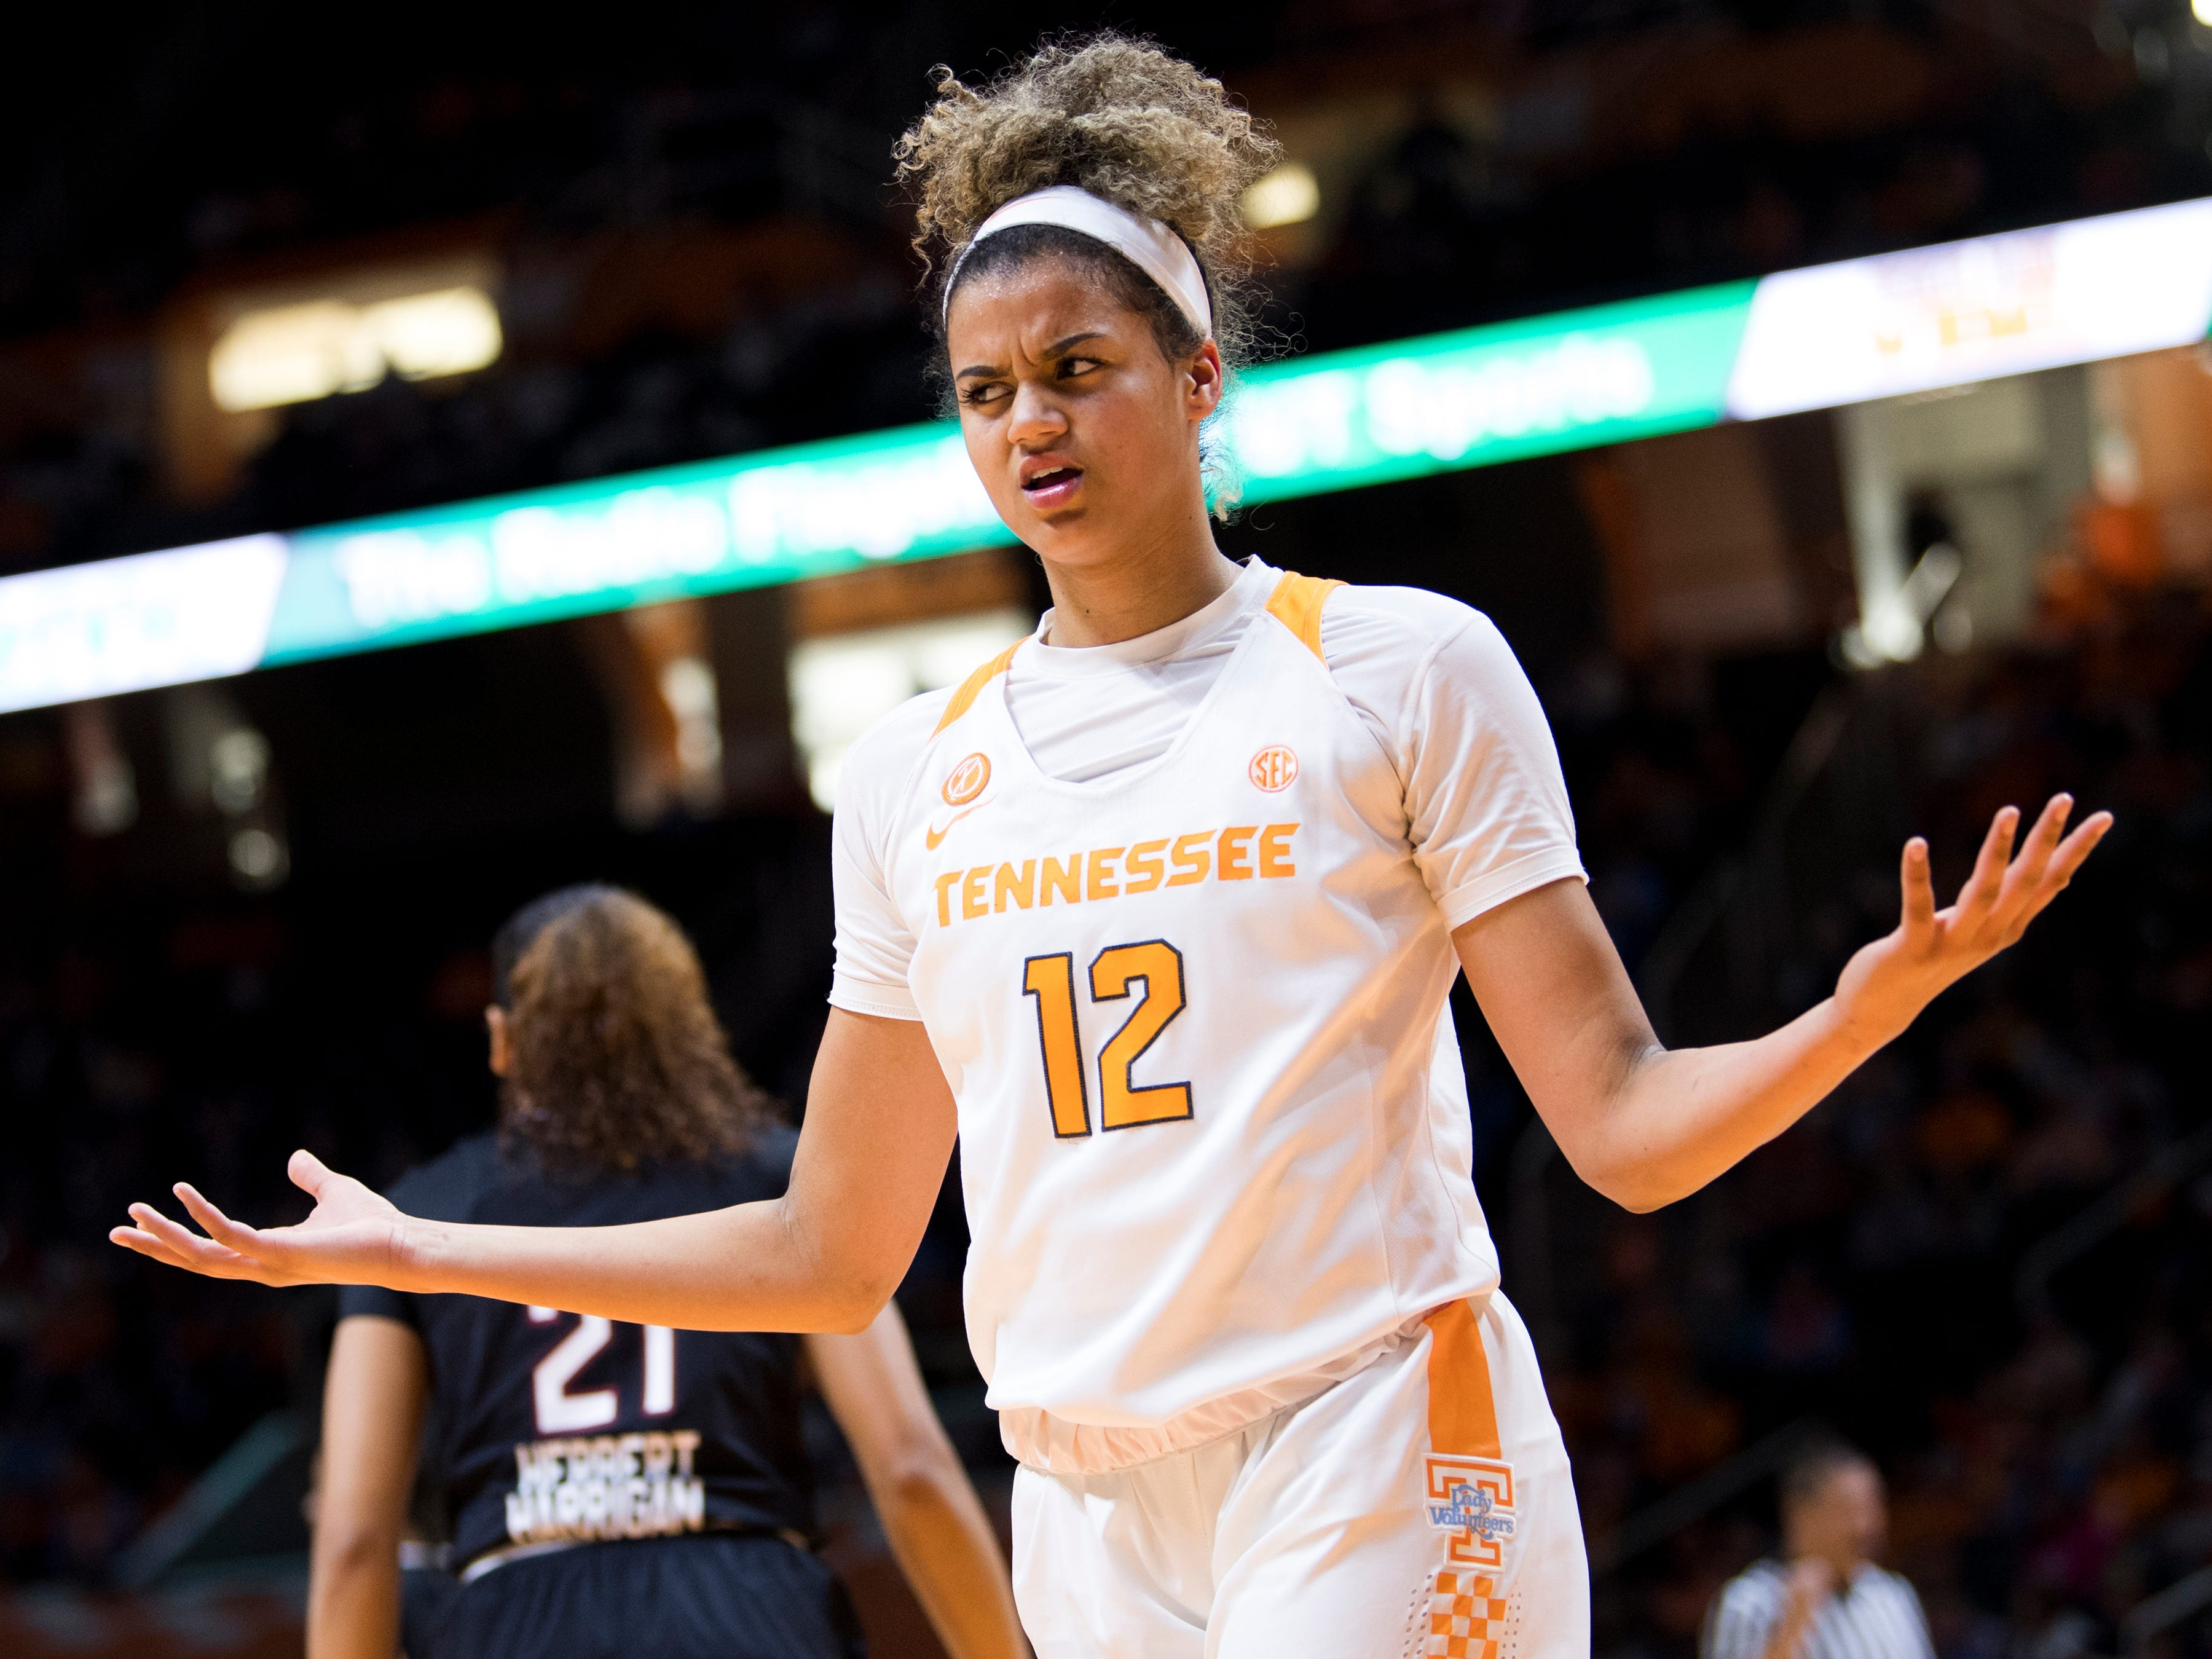 Tennessee guard Rae Burrell (12) reacts to a call against Tennessee during the Lady Vols' home SEC game against South Carolina at Thompson-Boling Arena in Knoxville on Sunday, February 24, 2019.